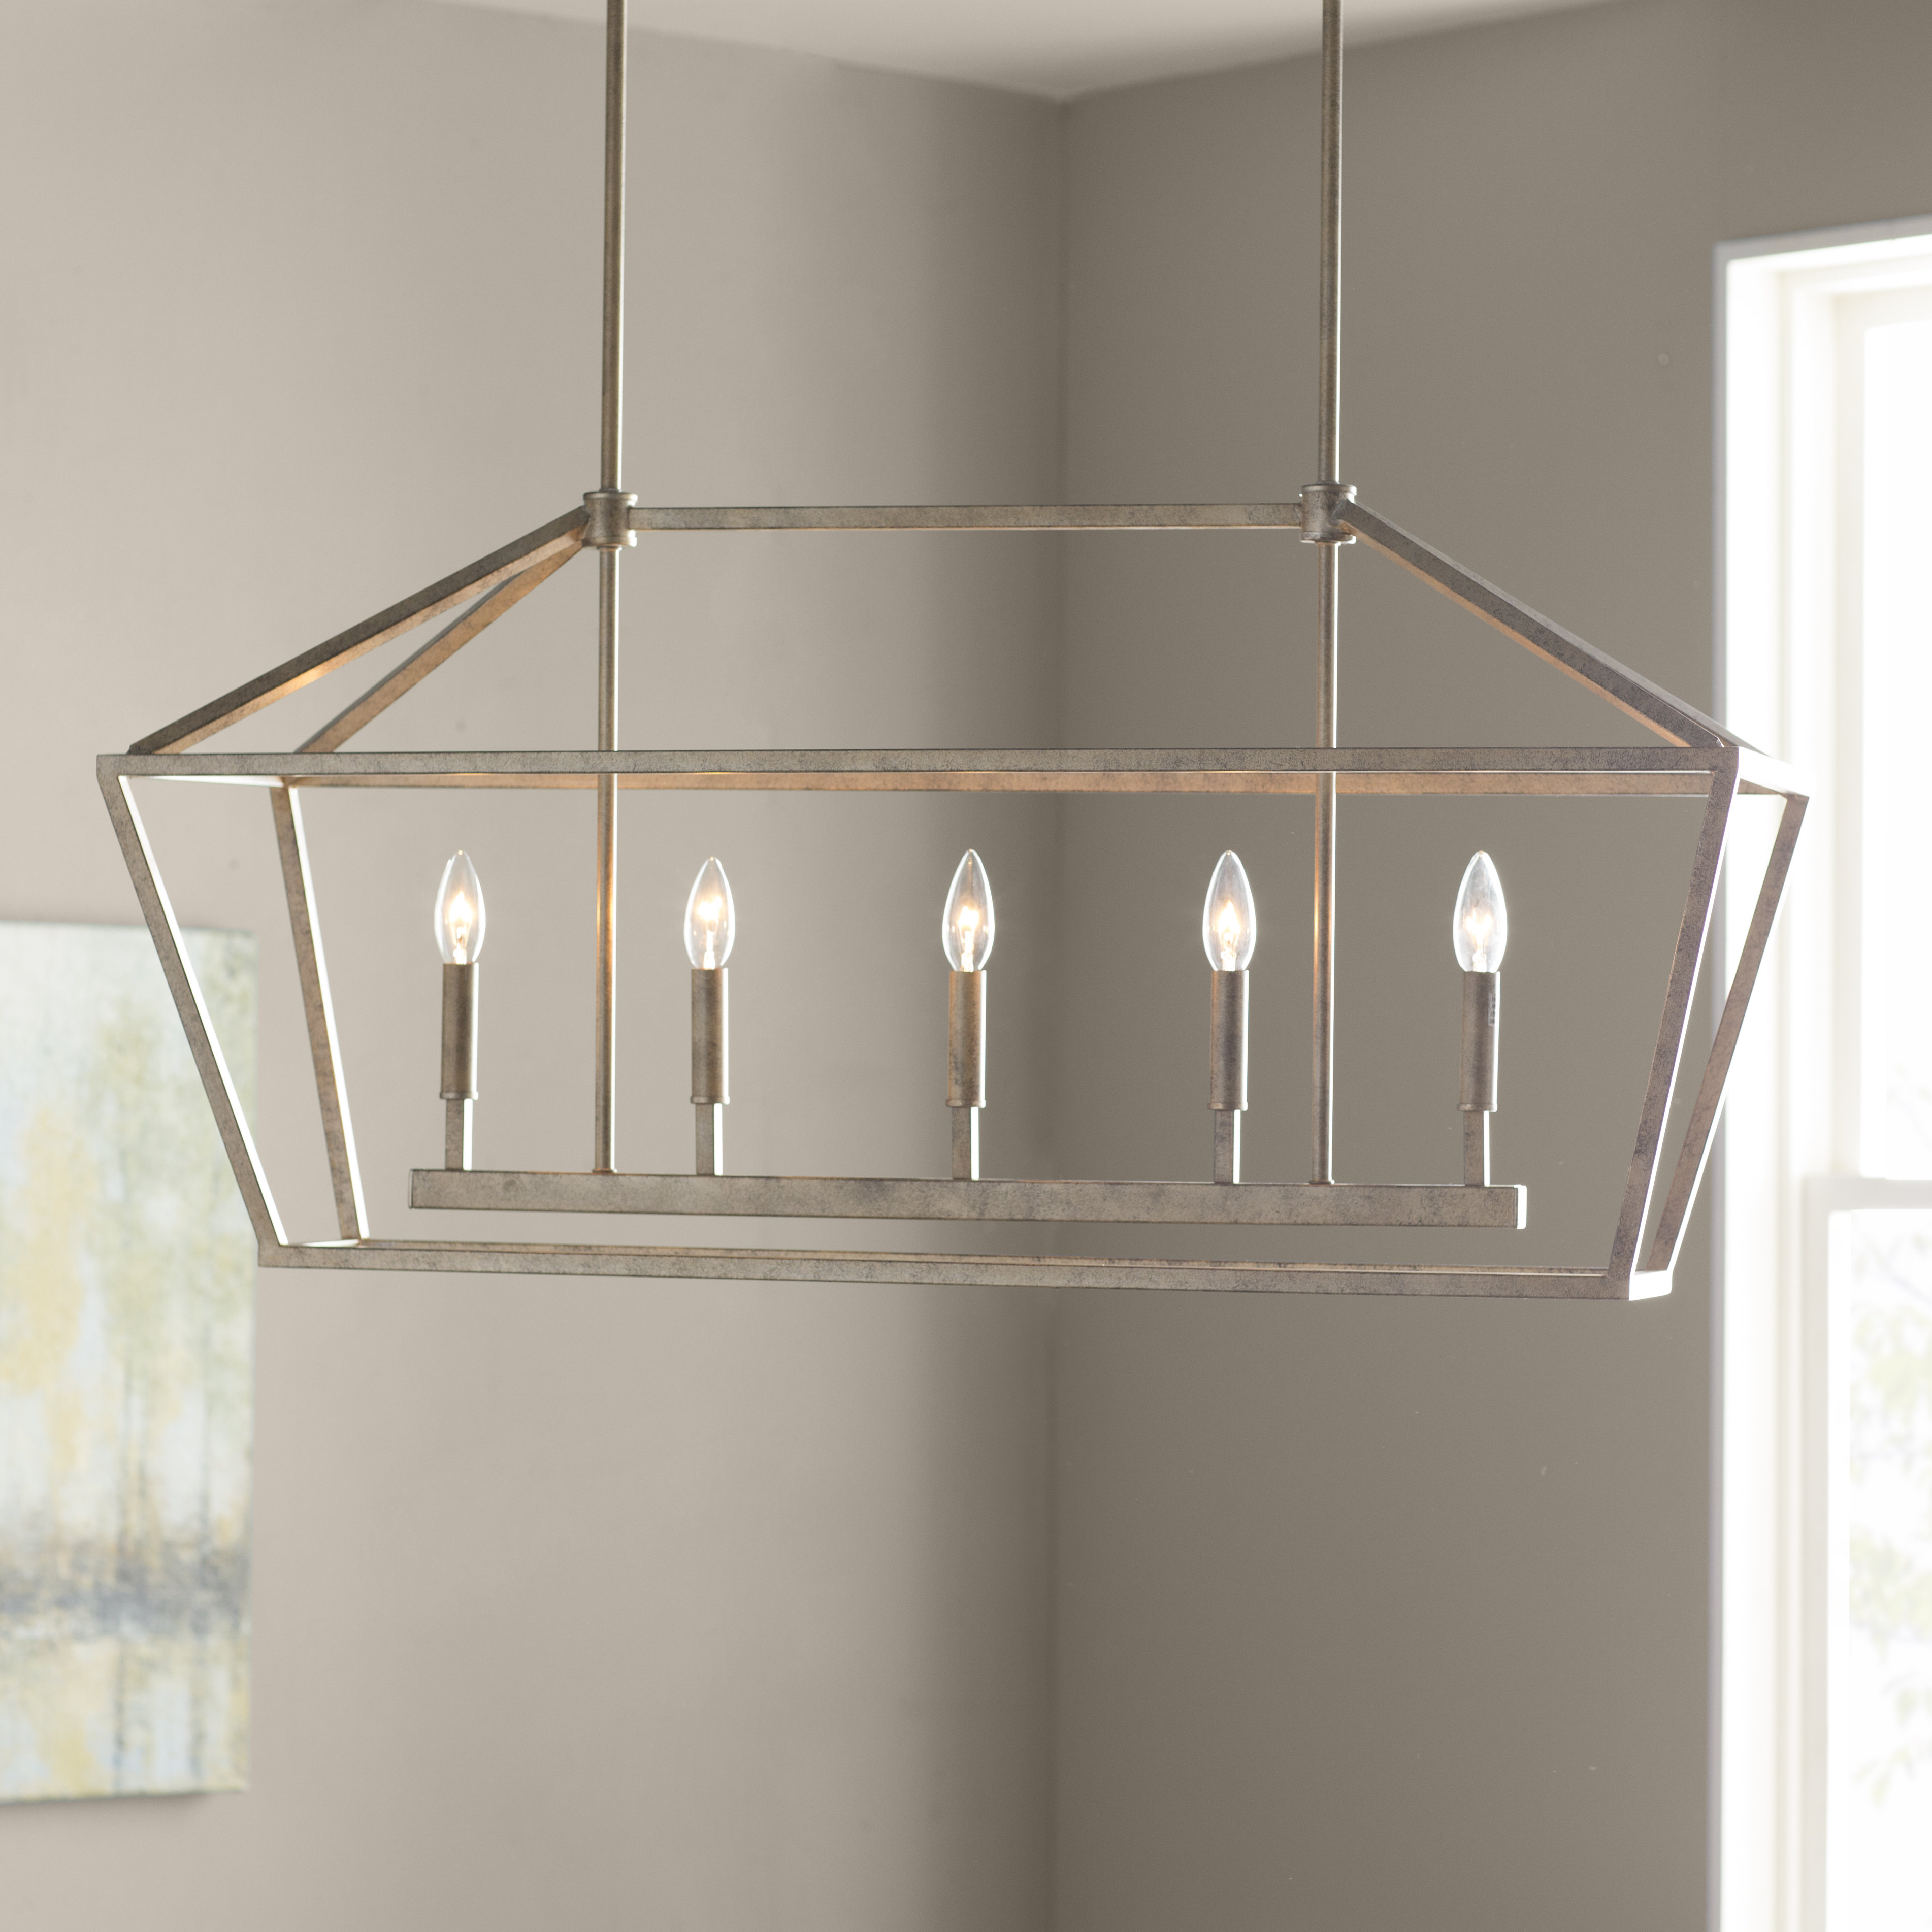 Widely Used Odie 8 Light Kitchen Island Square / Rectangle Pendants Within Freemont 5 Light Kitchen Island Pendant (View 25 of 25)